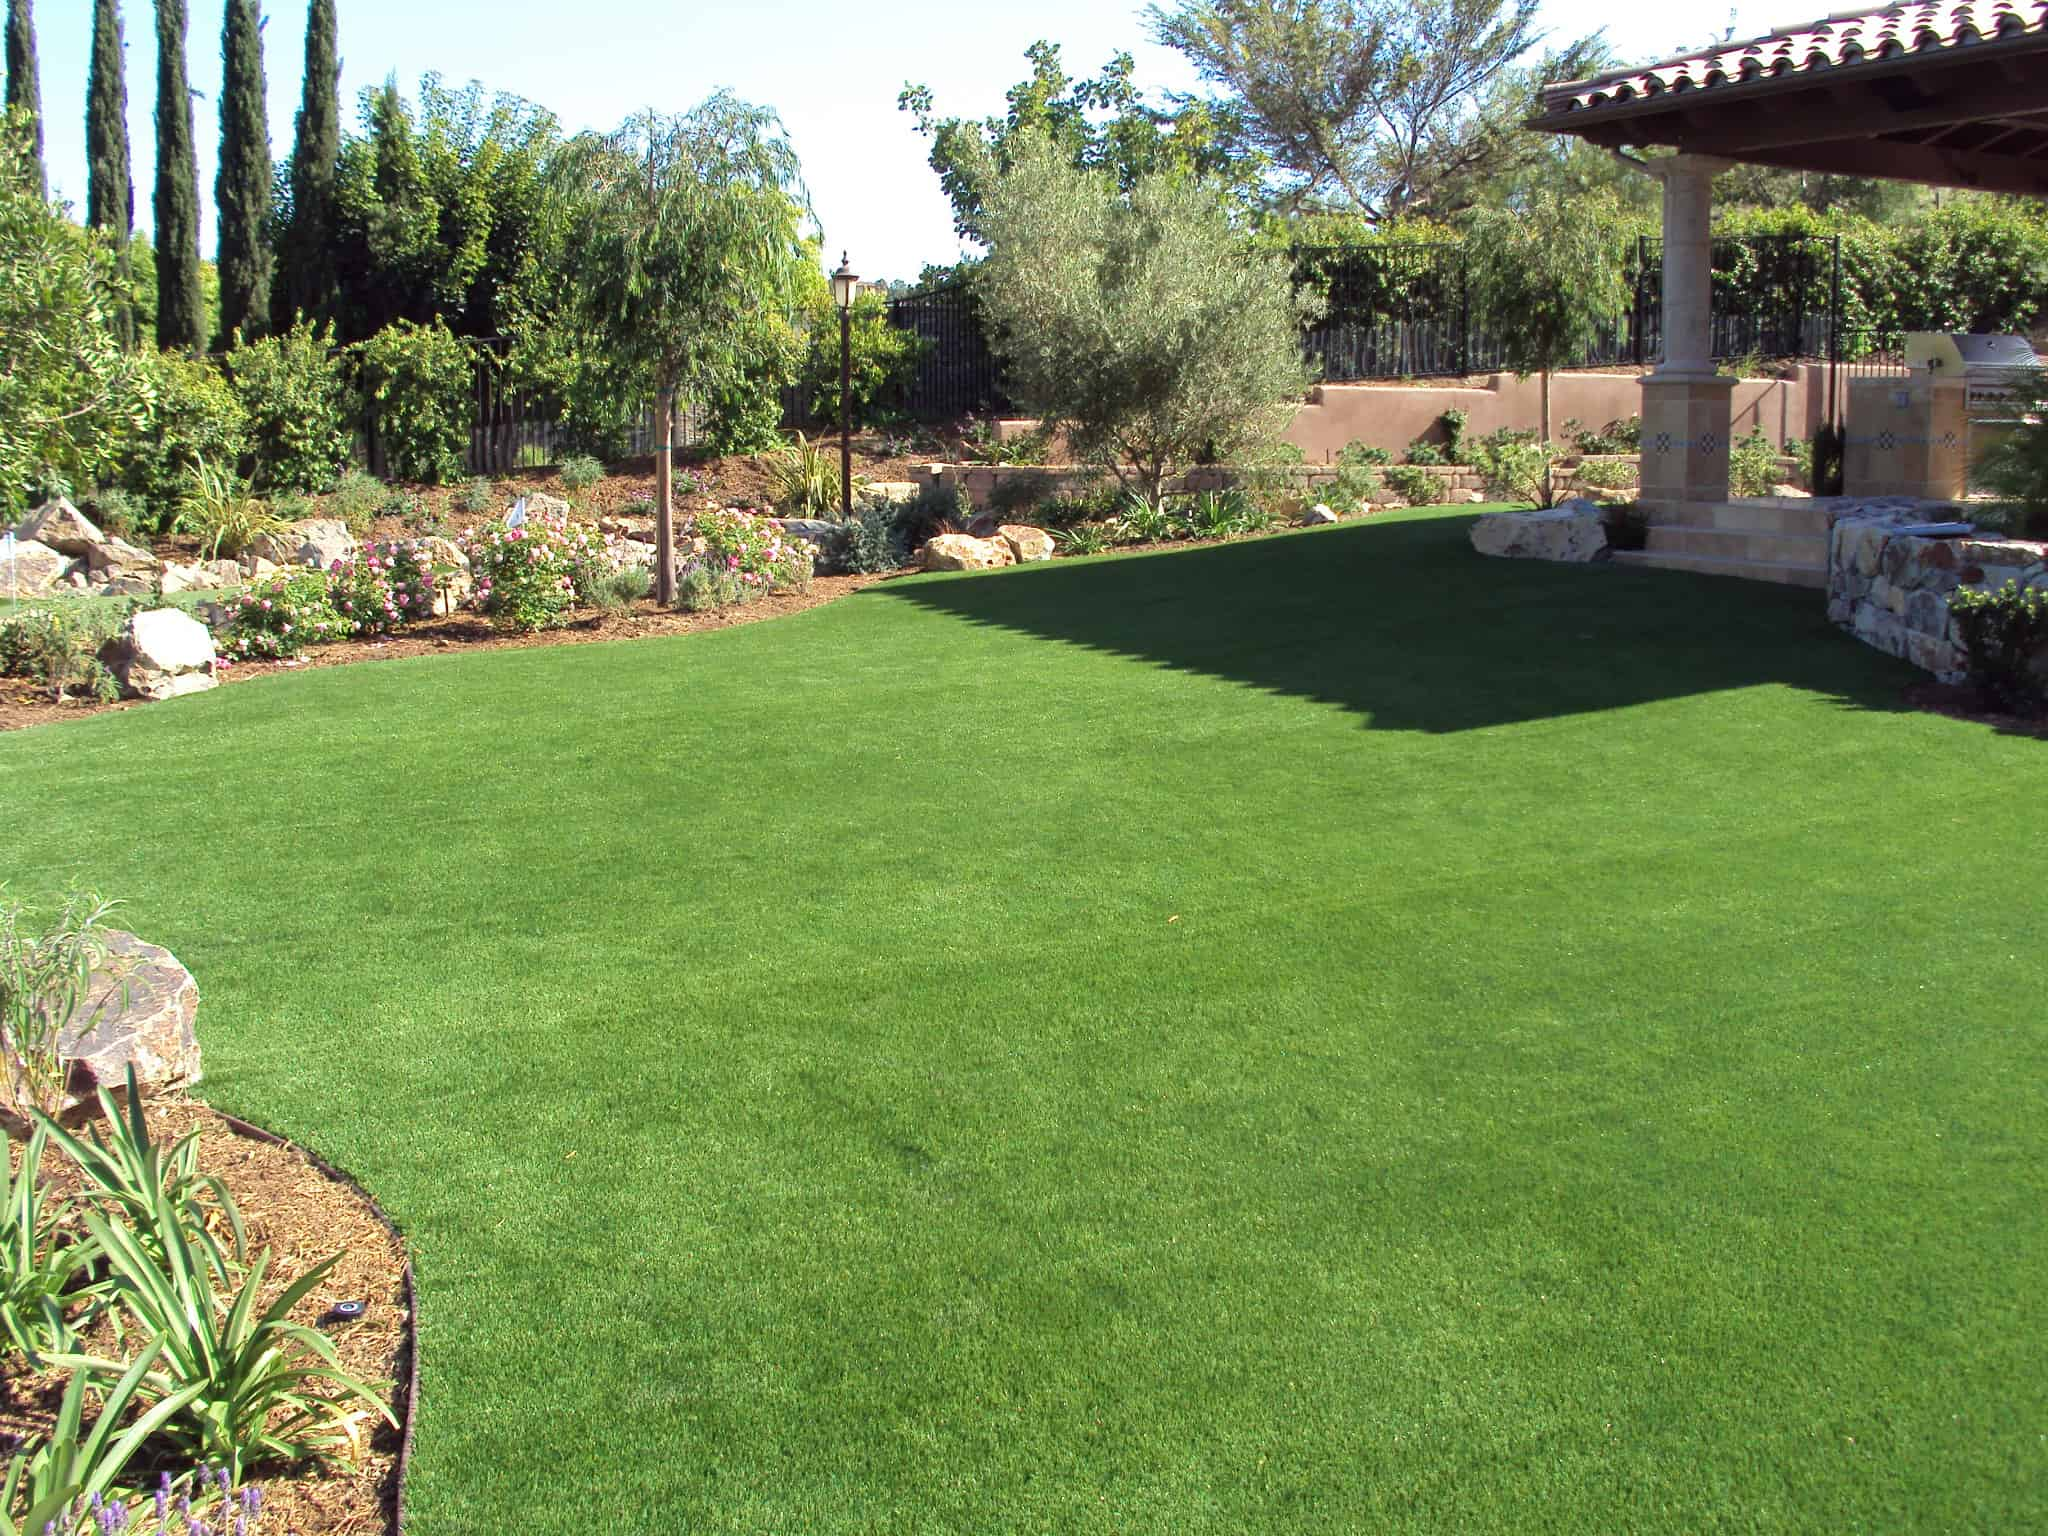 Backyard Summer Fun Family Activities Easyturf